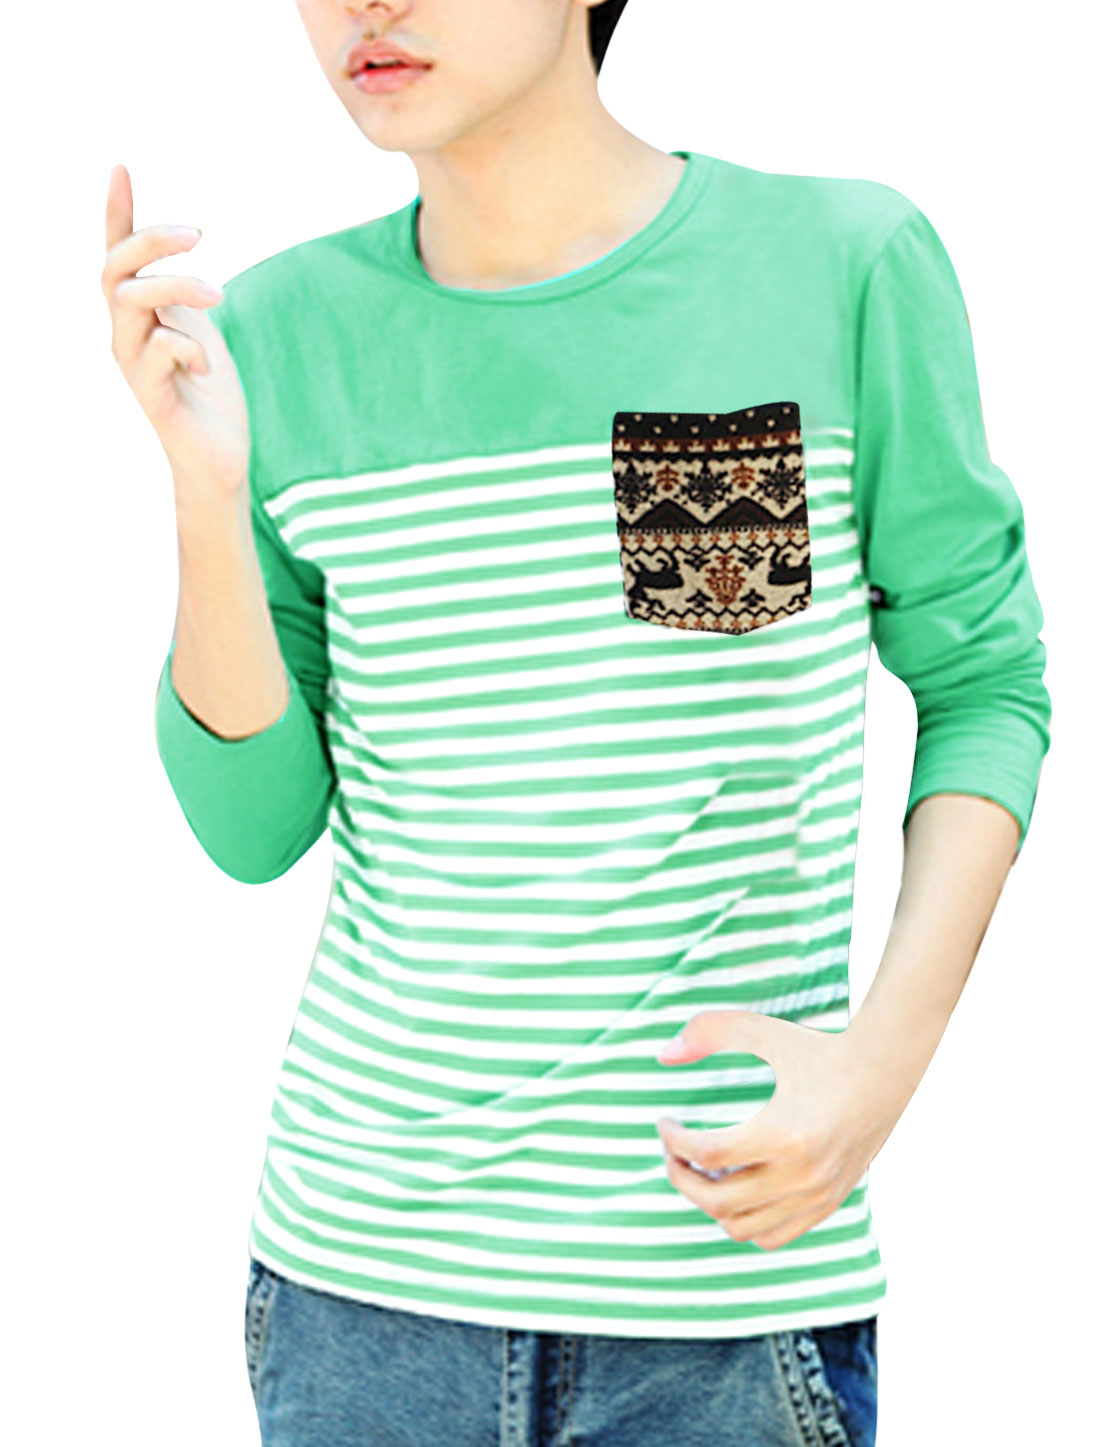 Men Single Chest Pocket Panel Design Stripes Tee Shirt Light Green M